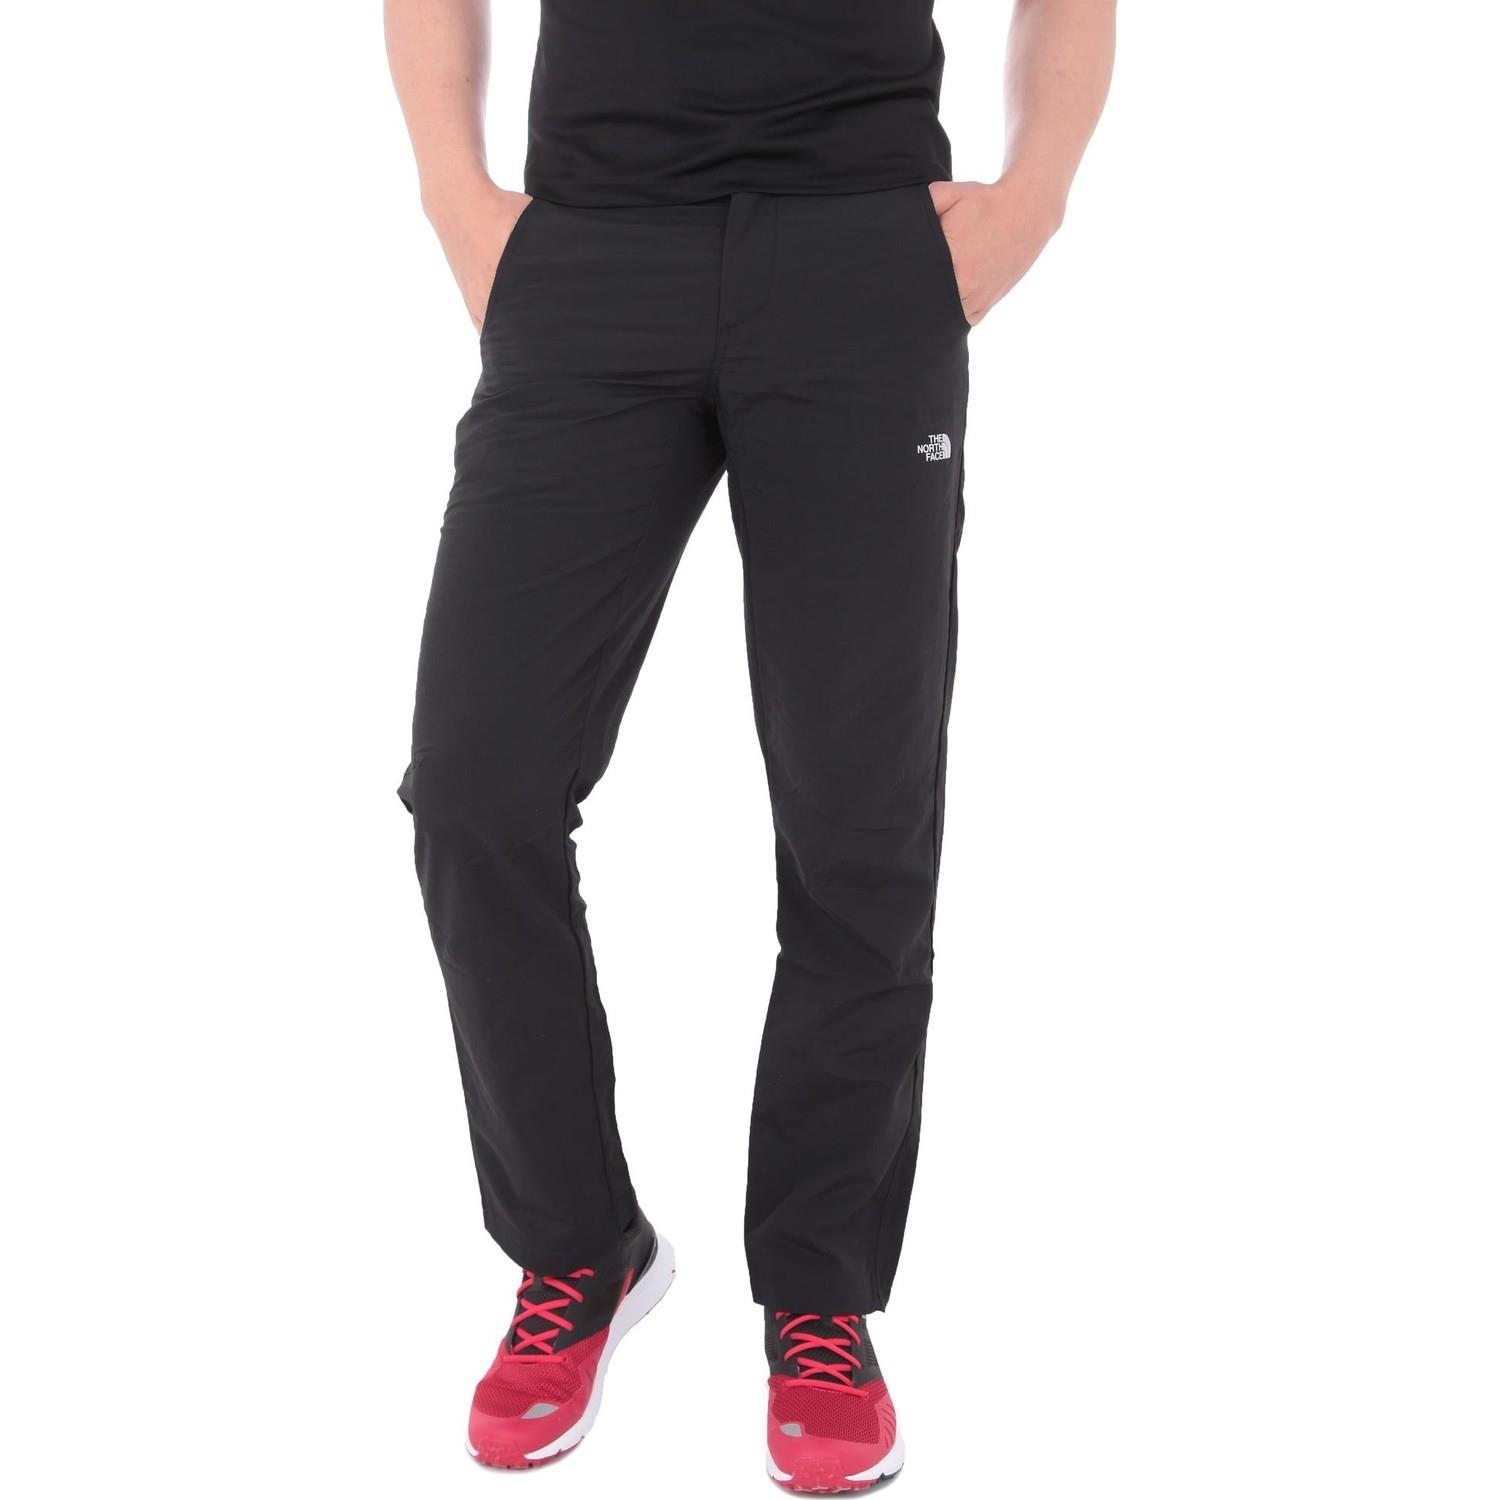 The Northface Erkek Tanken Pant (Regular Fit) T93Rzyjk3 Pantolon